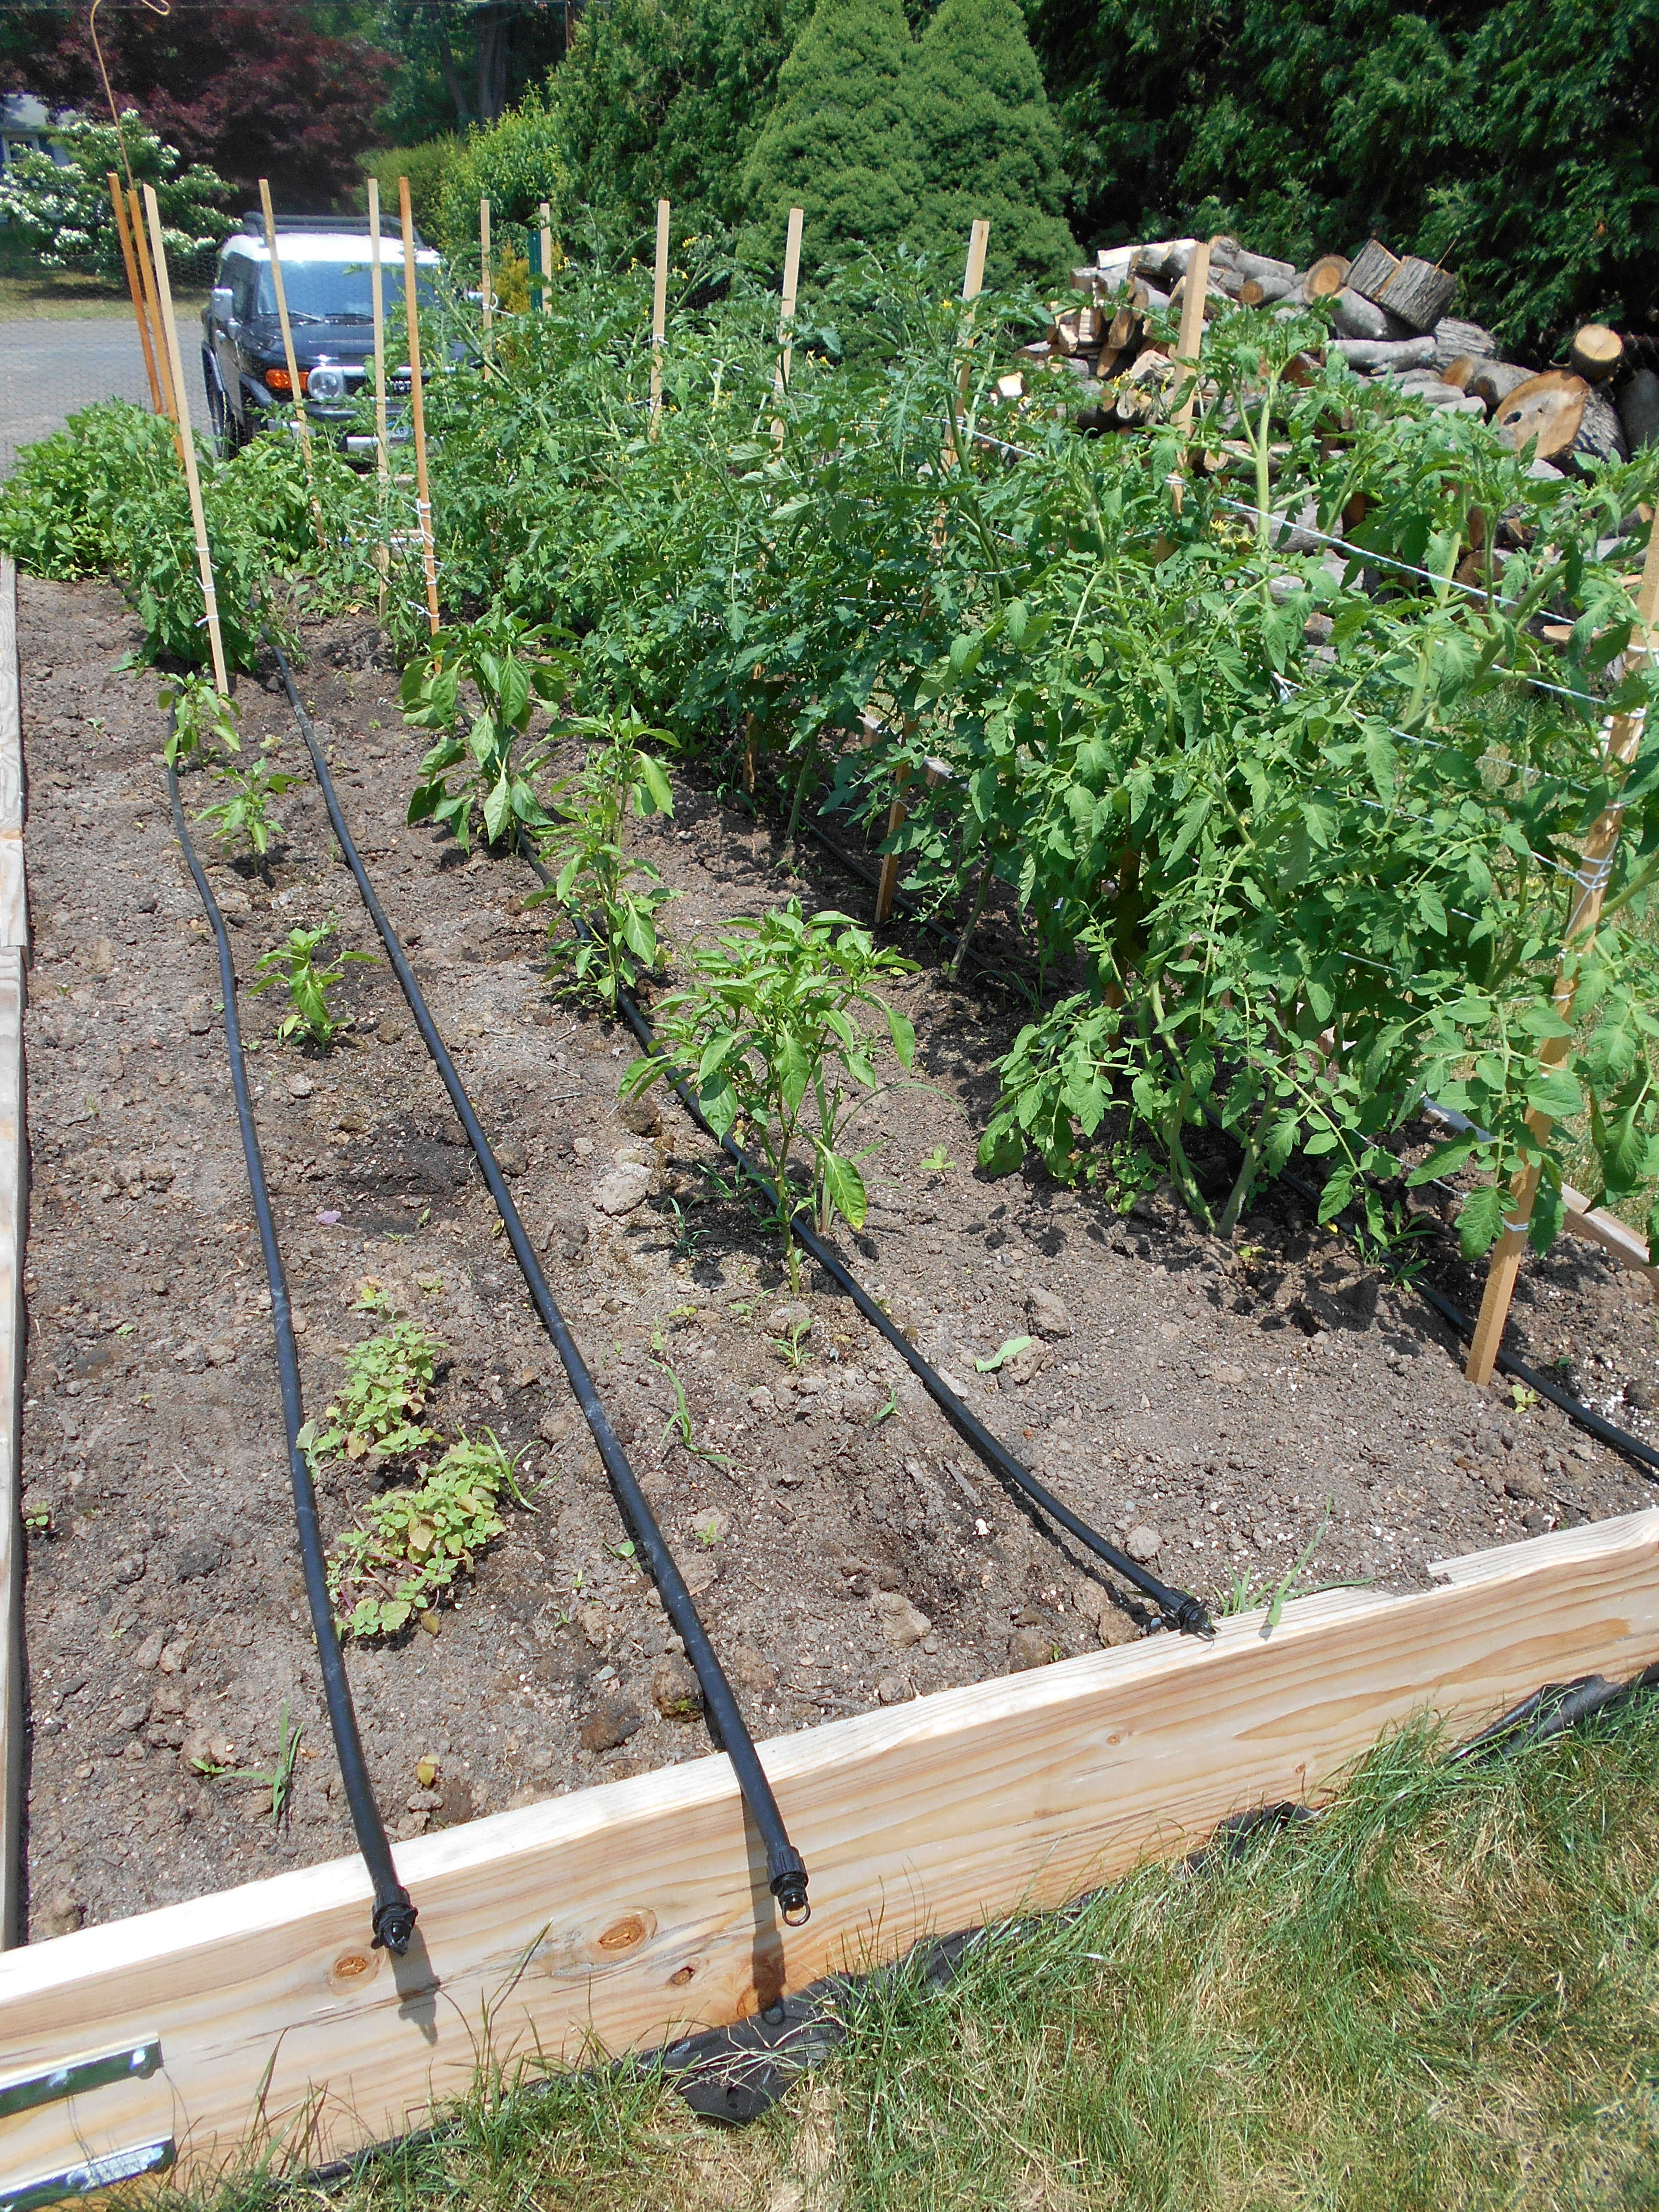 Do it yourself drip irrigation systems growers supply drip irrigation fully installed solutioingenieria Image collections